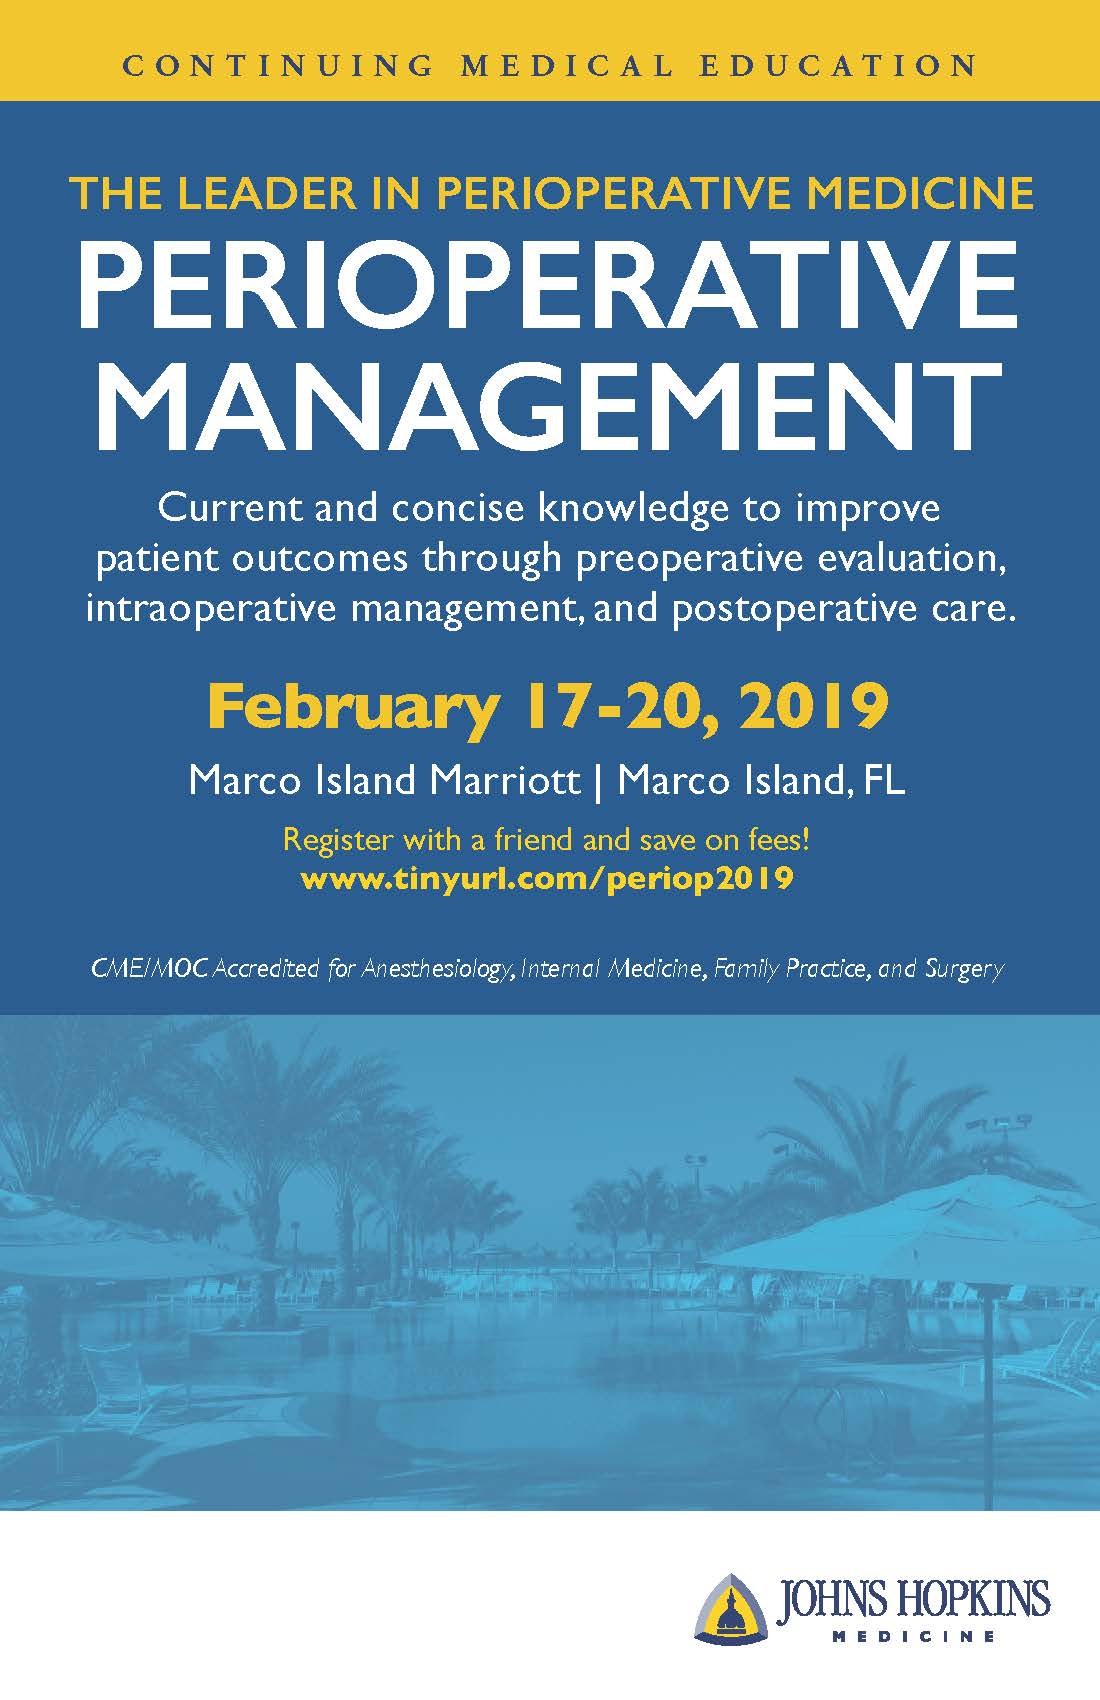 Perioperative Management Course 2019 – Johns Hopkins